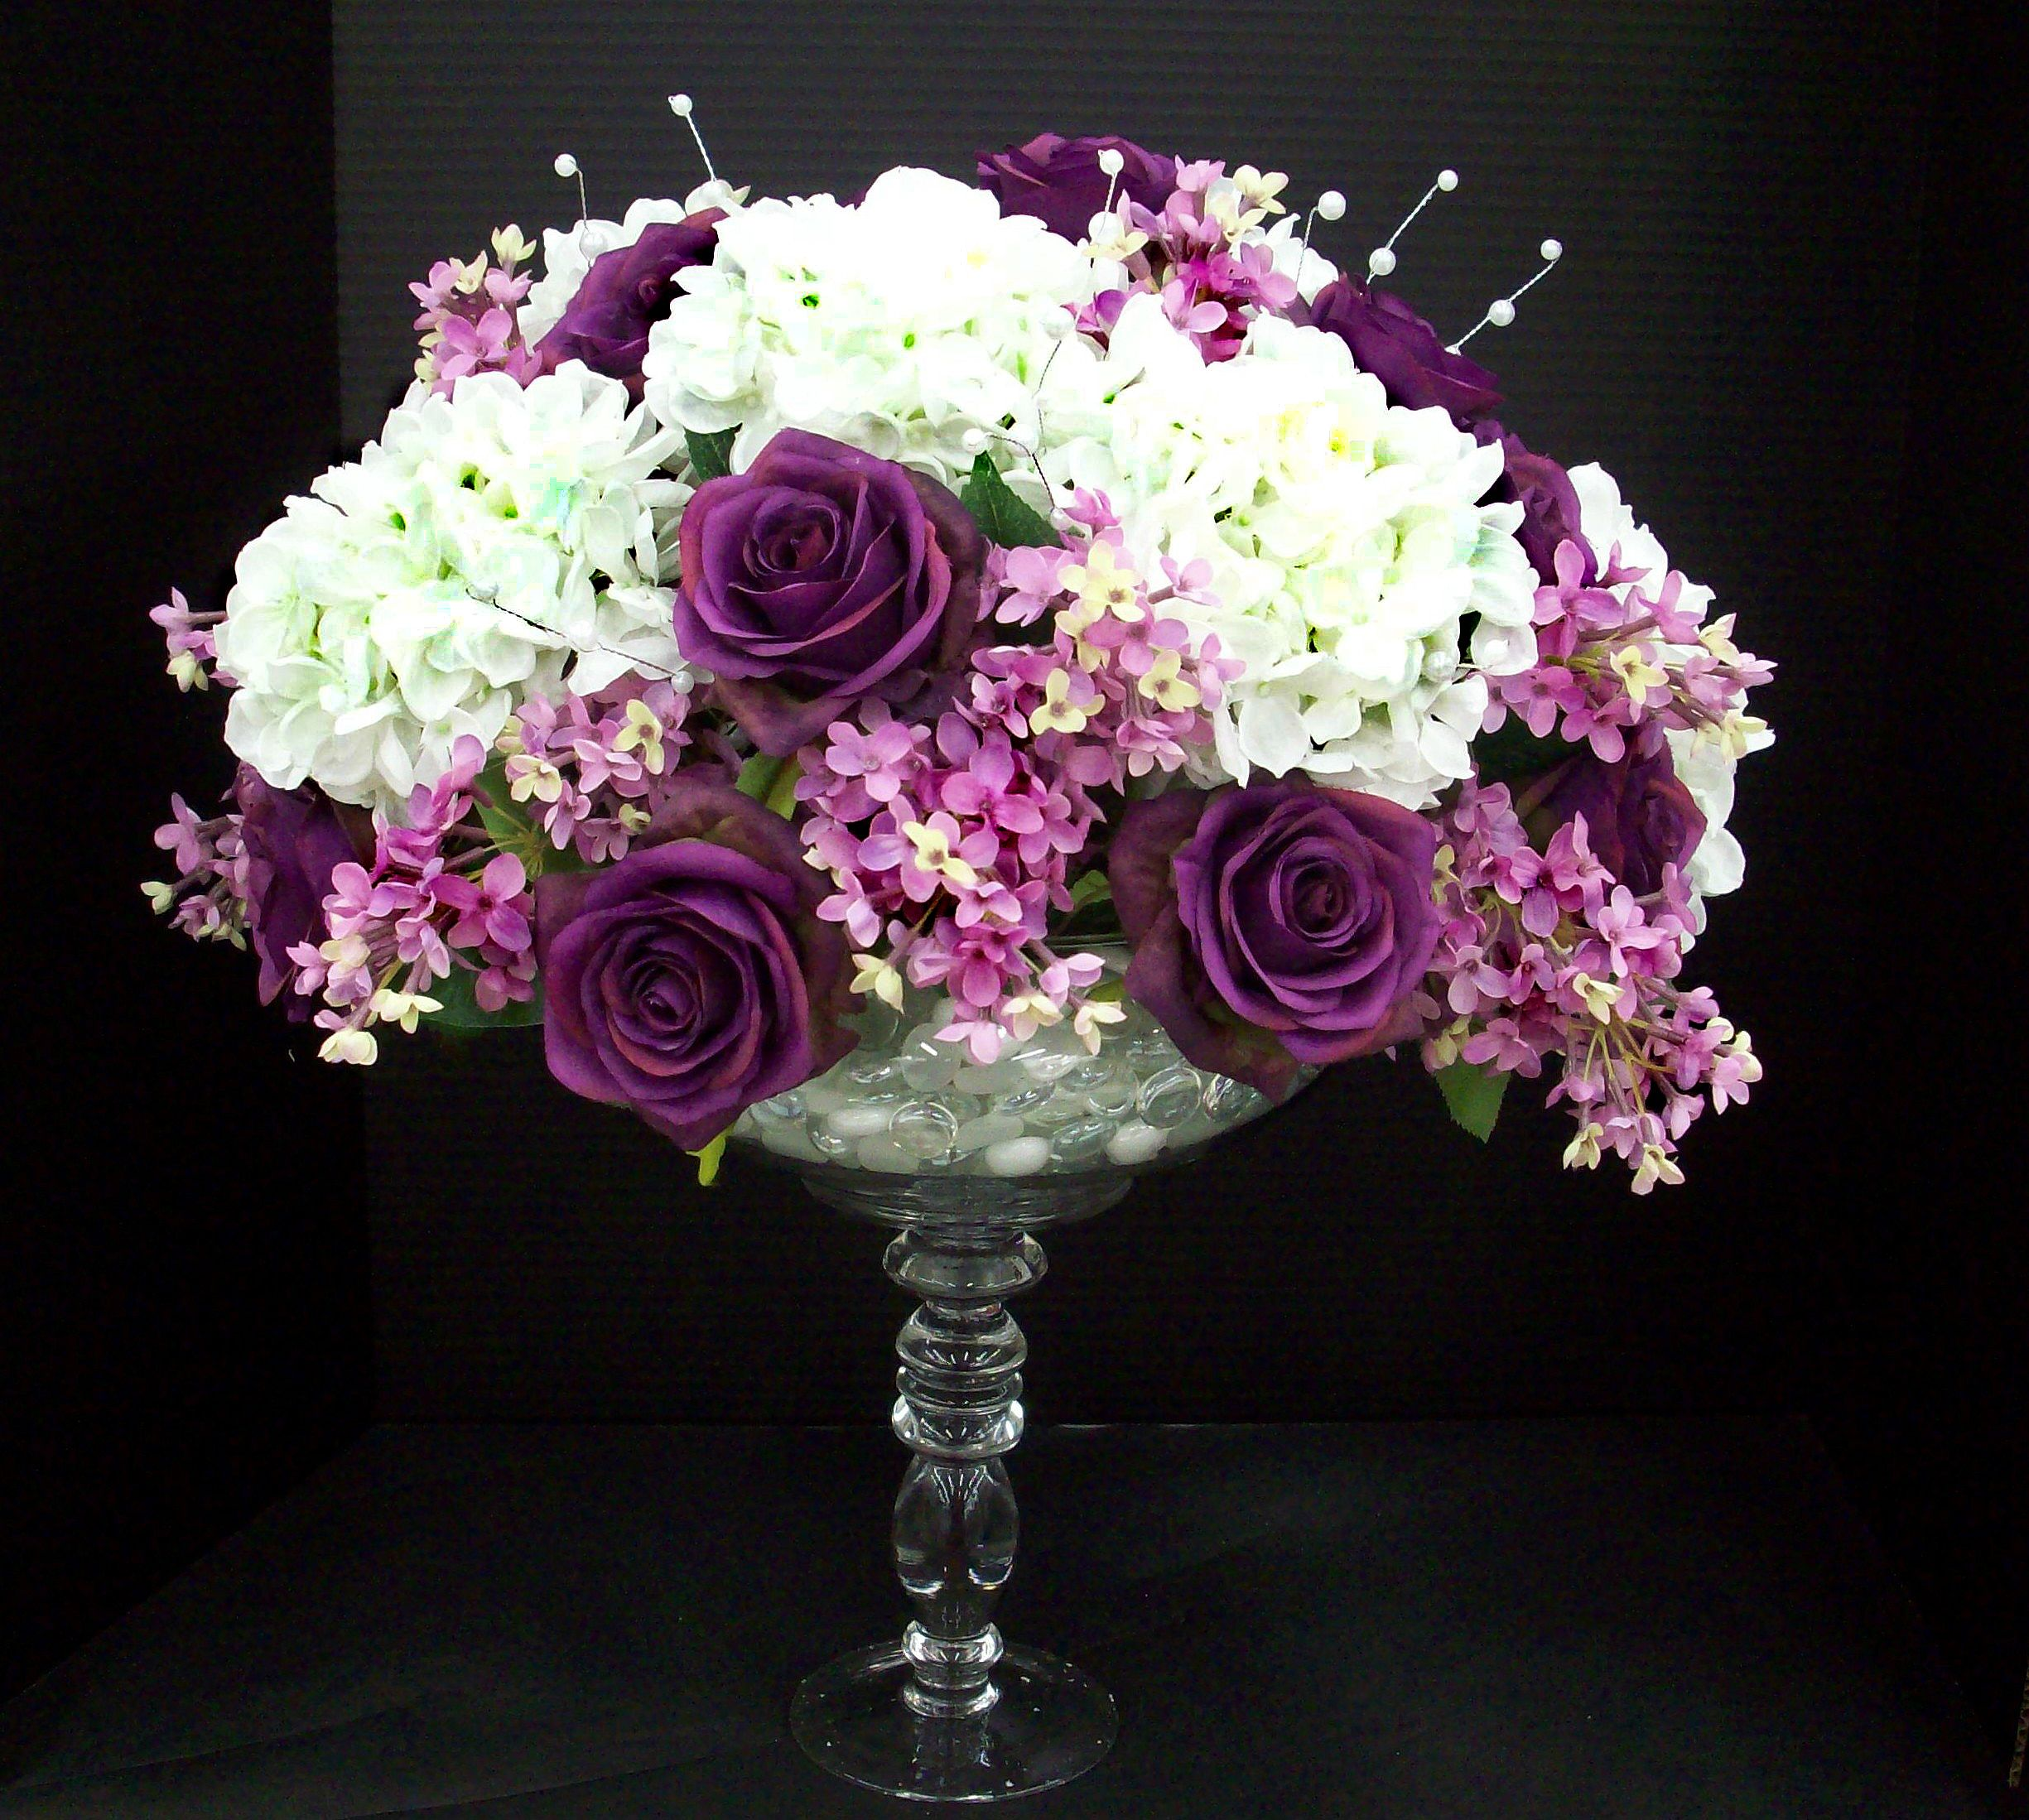 Purple Rose Lilac Centerpiece Designed By Karen B Ac Moore Purple Rose  Lilac Centerpiece Designed By